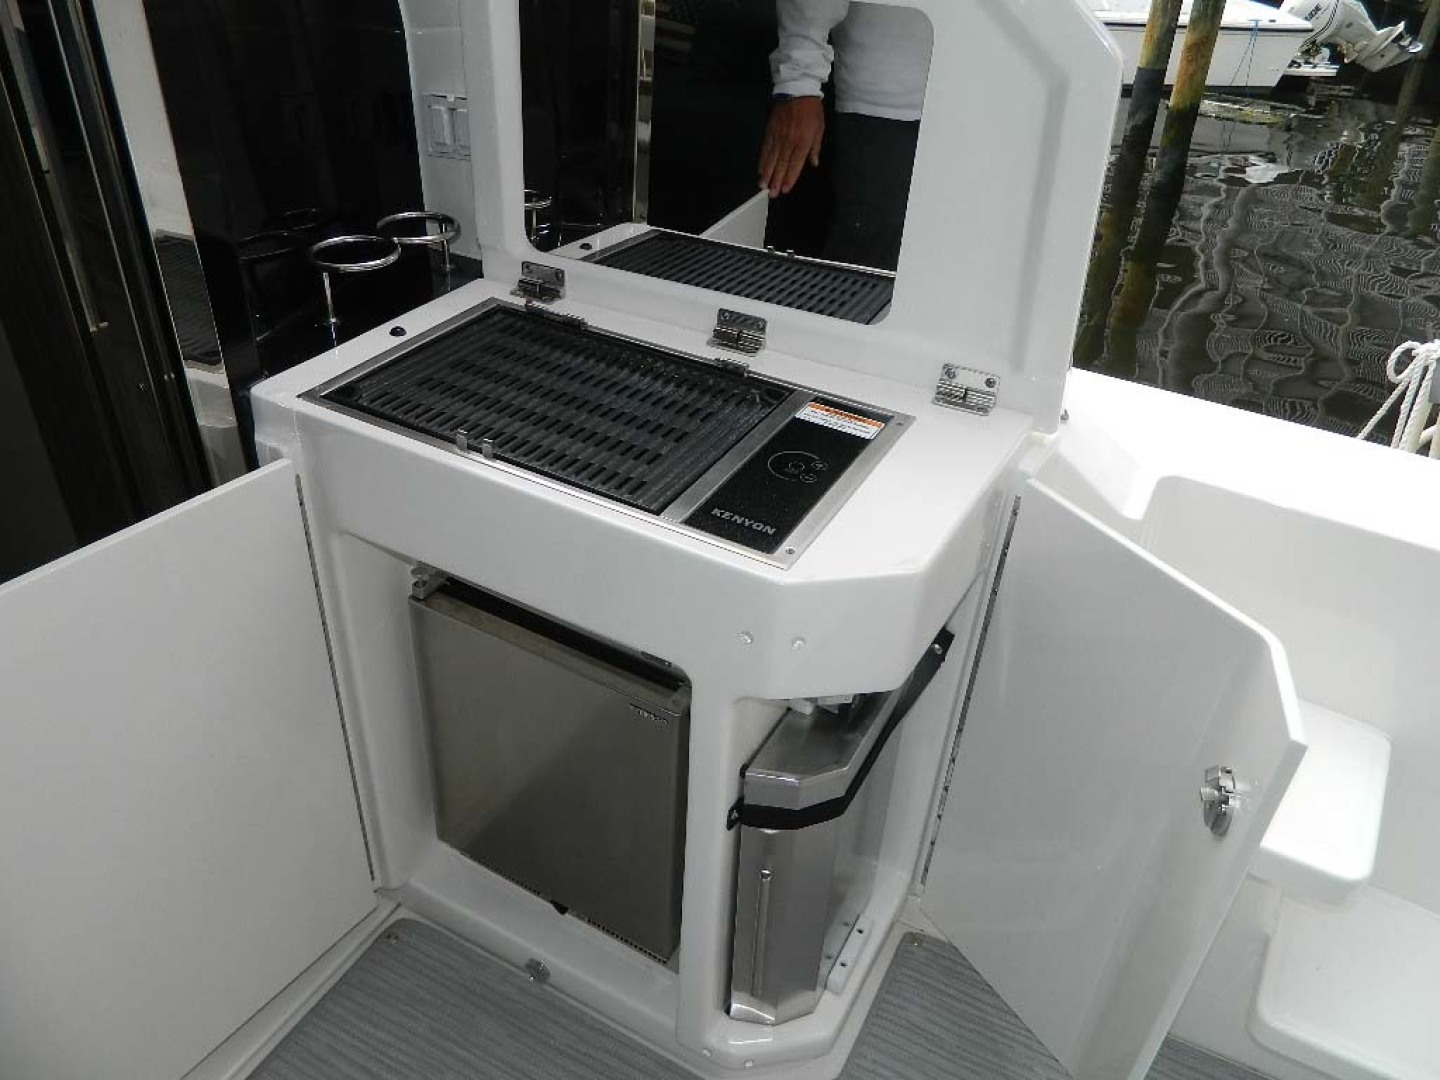 Sea Ray-Sundancer 510 Signature 2018-White Wings V Deerfield Beach-Florida-United States-Aft Deck Grill and Ice Maker-1112687 | Thumbnail